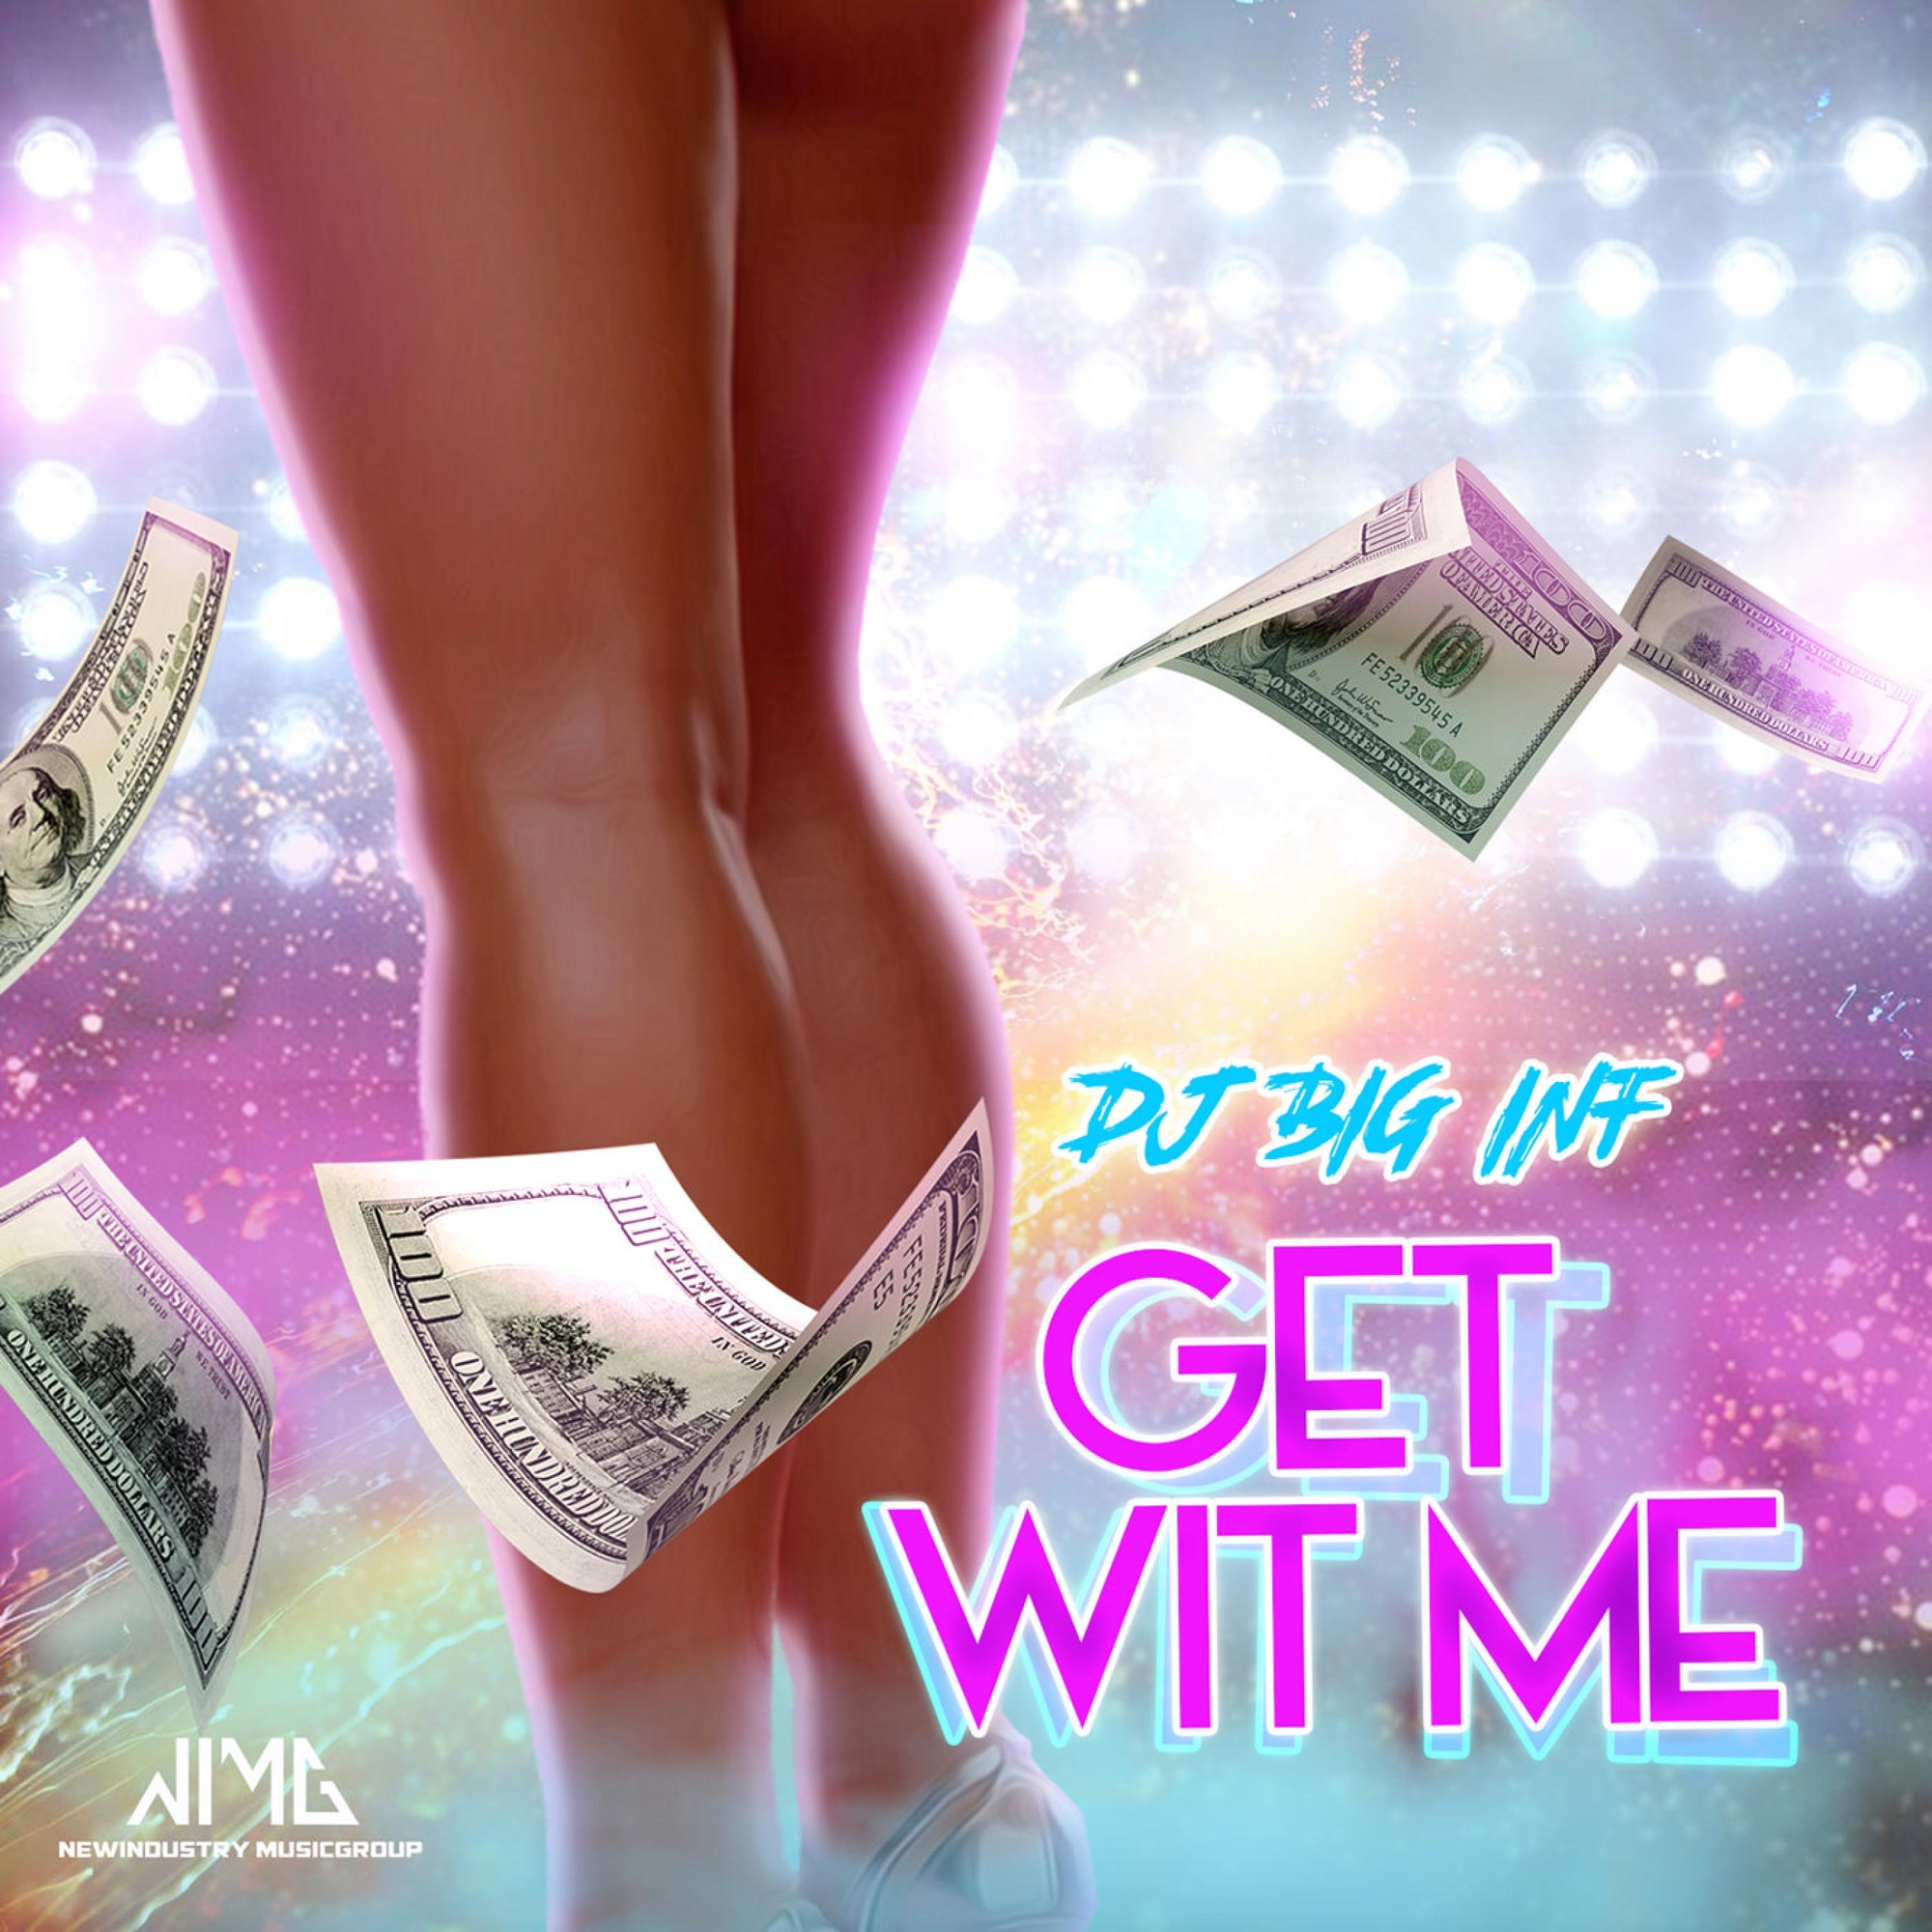 Art for Get Wit Me by Dj Big Inf